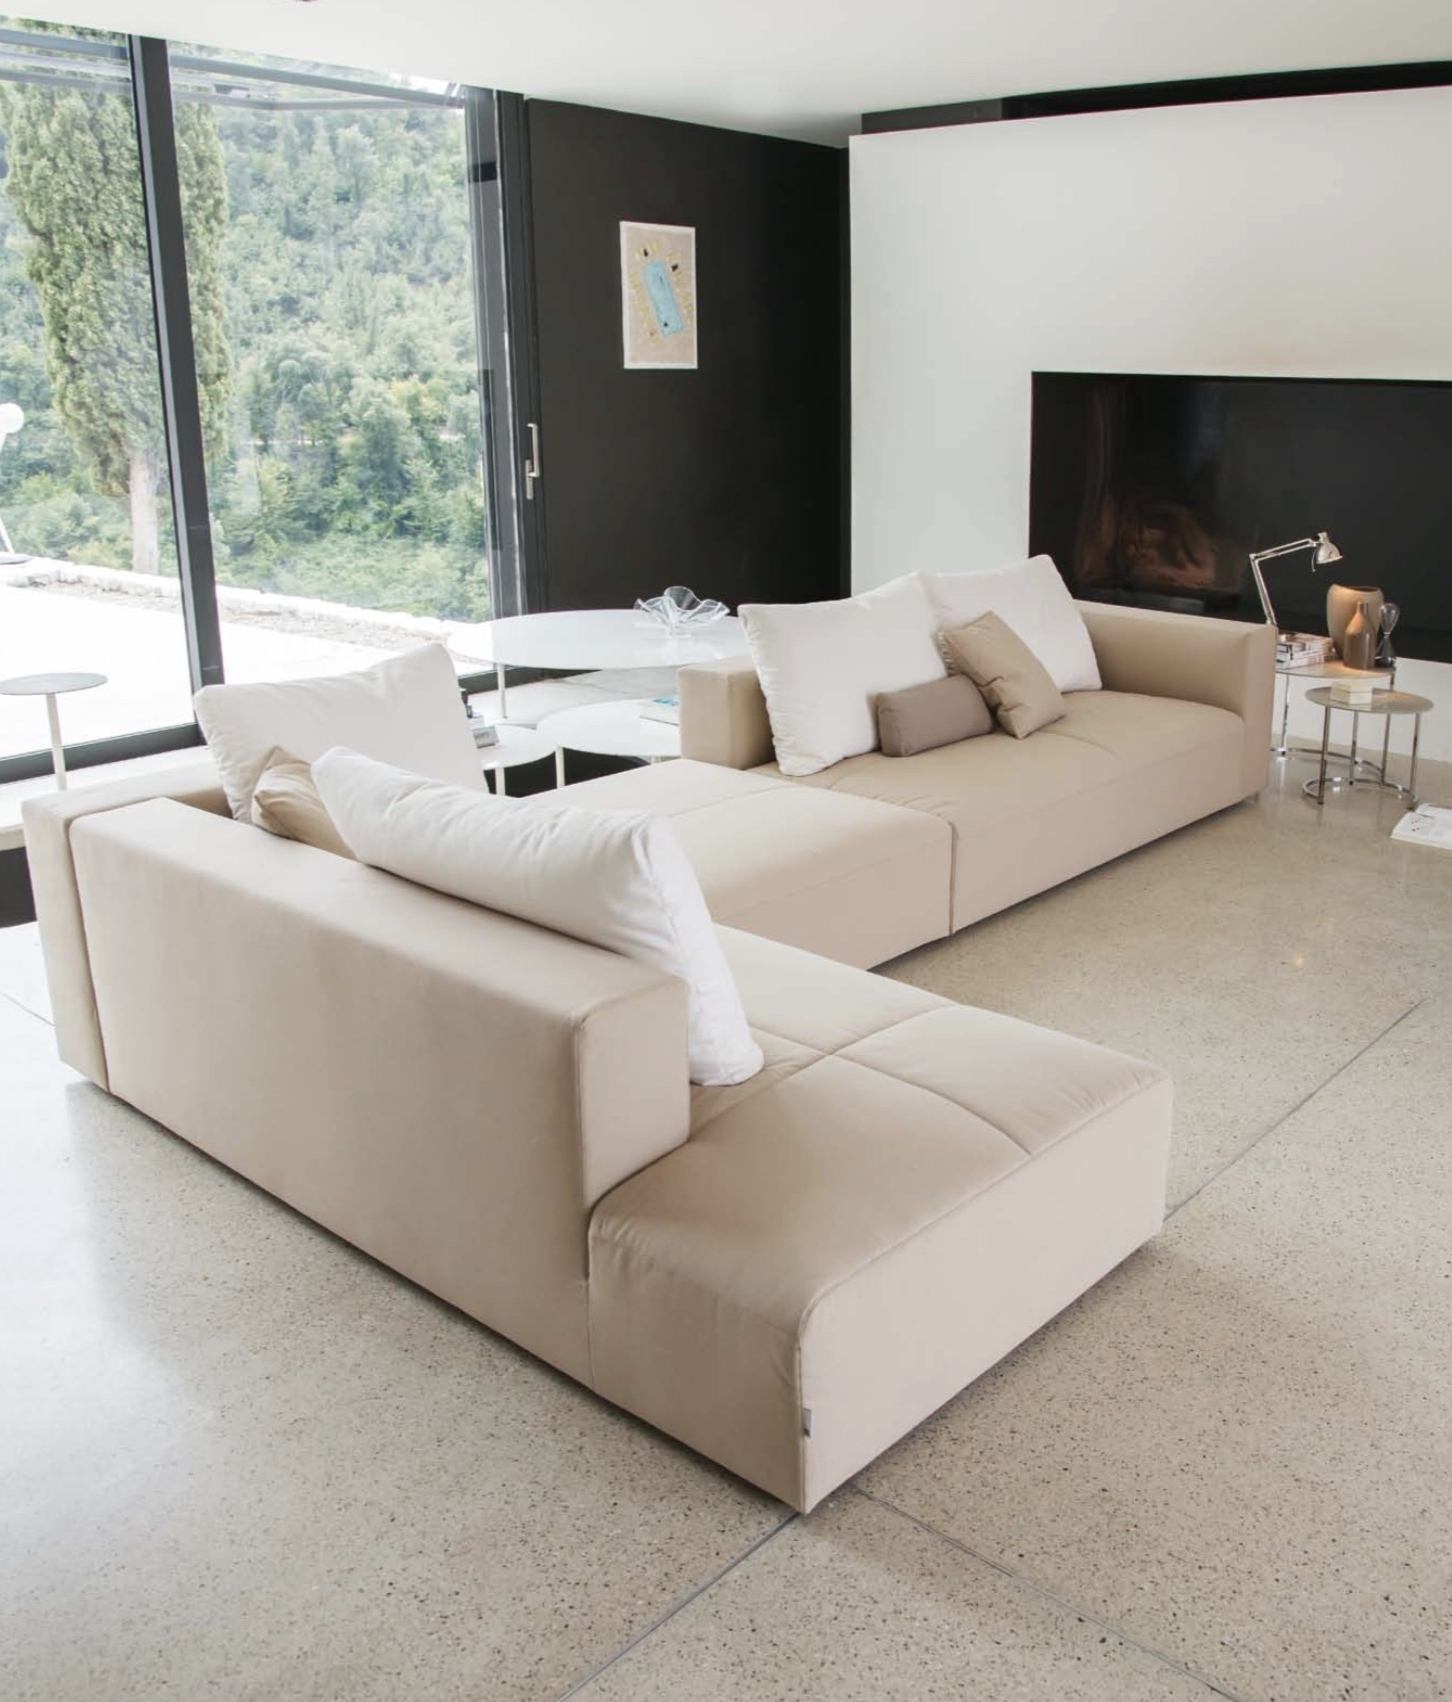 Cute Modern Sectional Sofas With Italian Sectional Sofas Intended For Latest Modern Sectional Sofas (View 6 of 20)